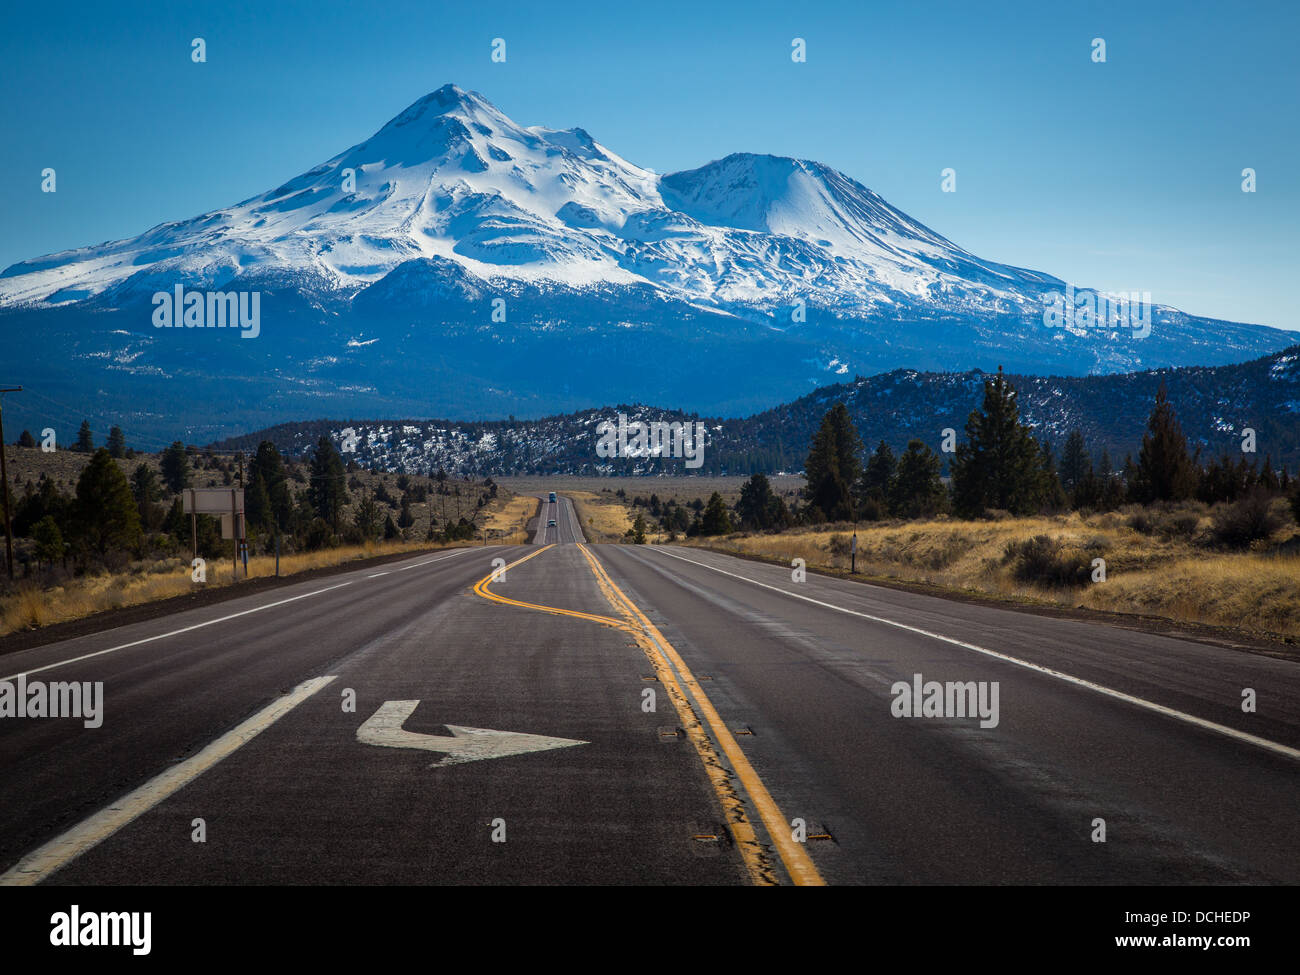 Mount Shasta is located at the southern end of the Cascade Range in Siskiyou County, California - Stock Image